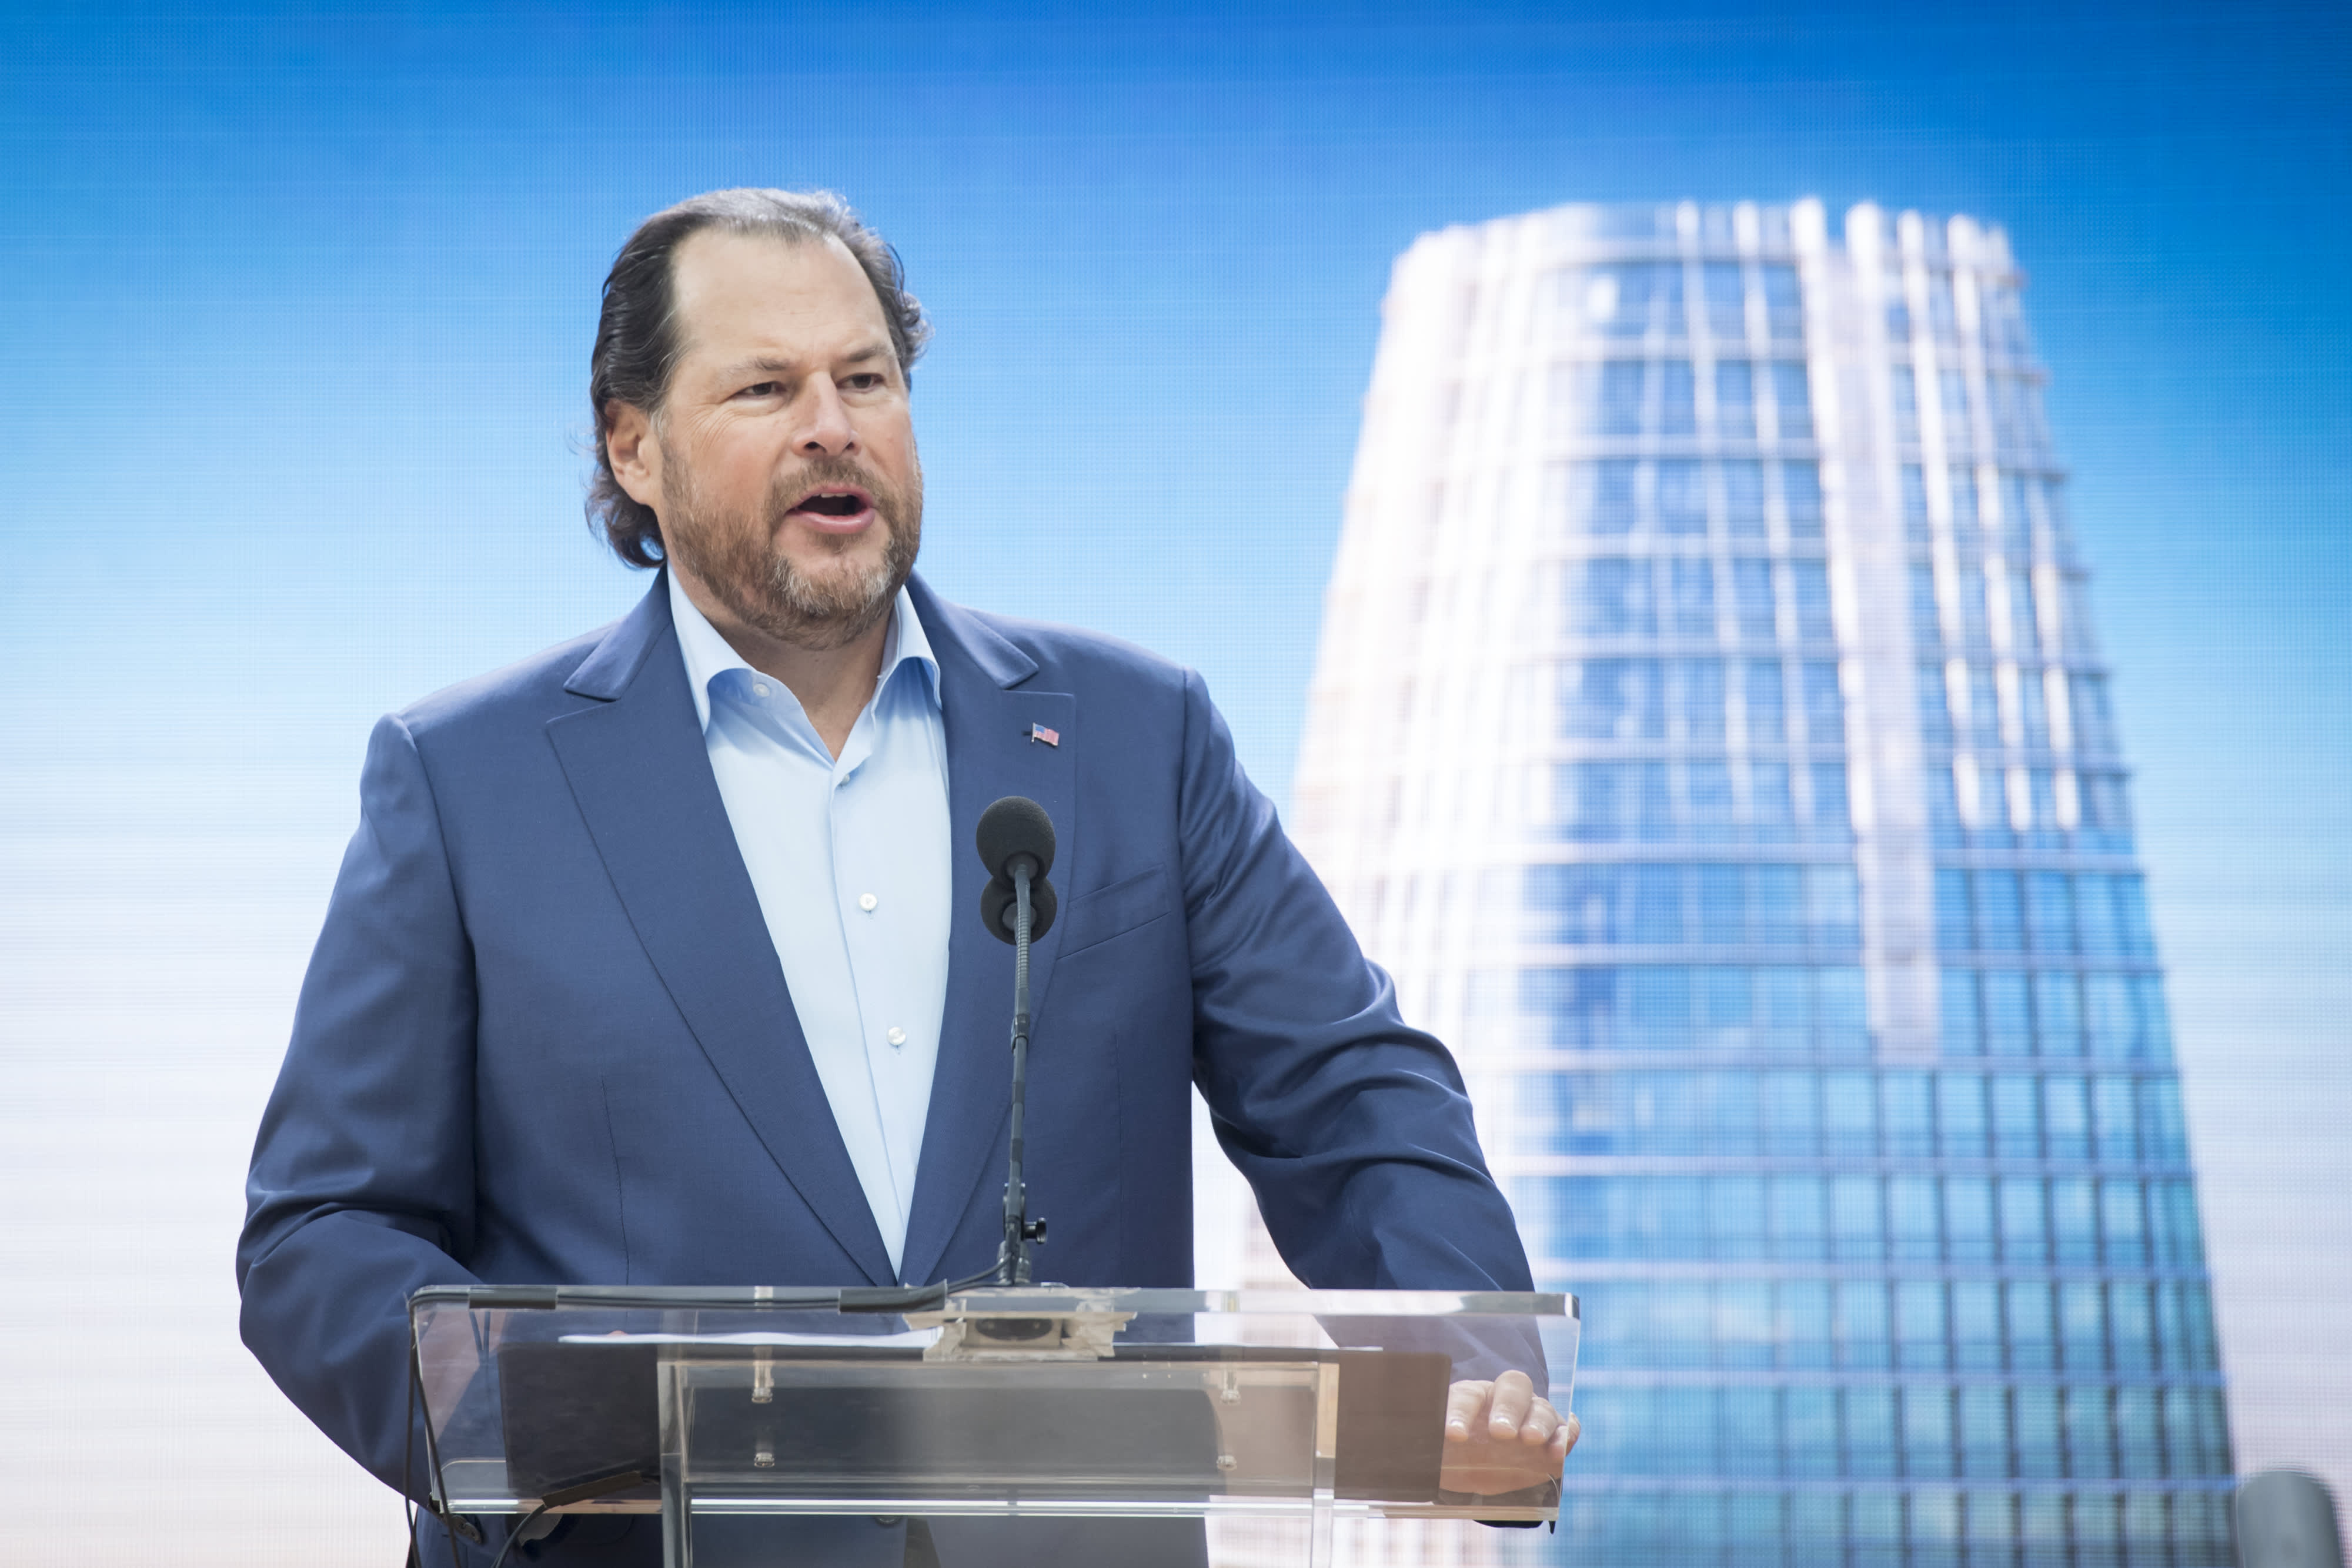 Billionaire Marc Benioff: Capitalism has 'led to horrifying inequality' and must be fixed